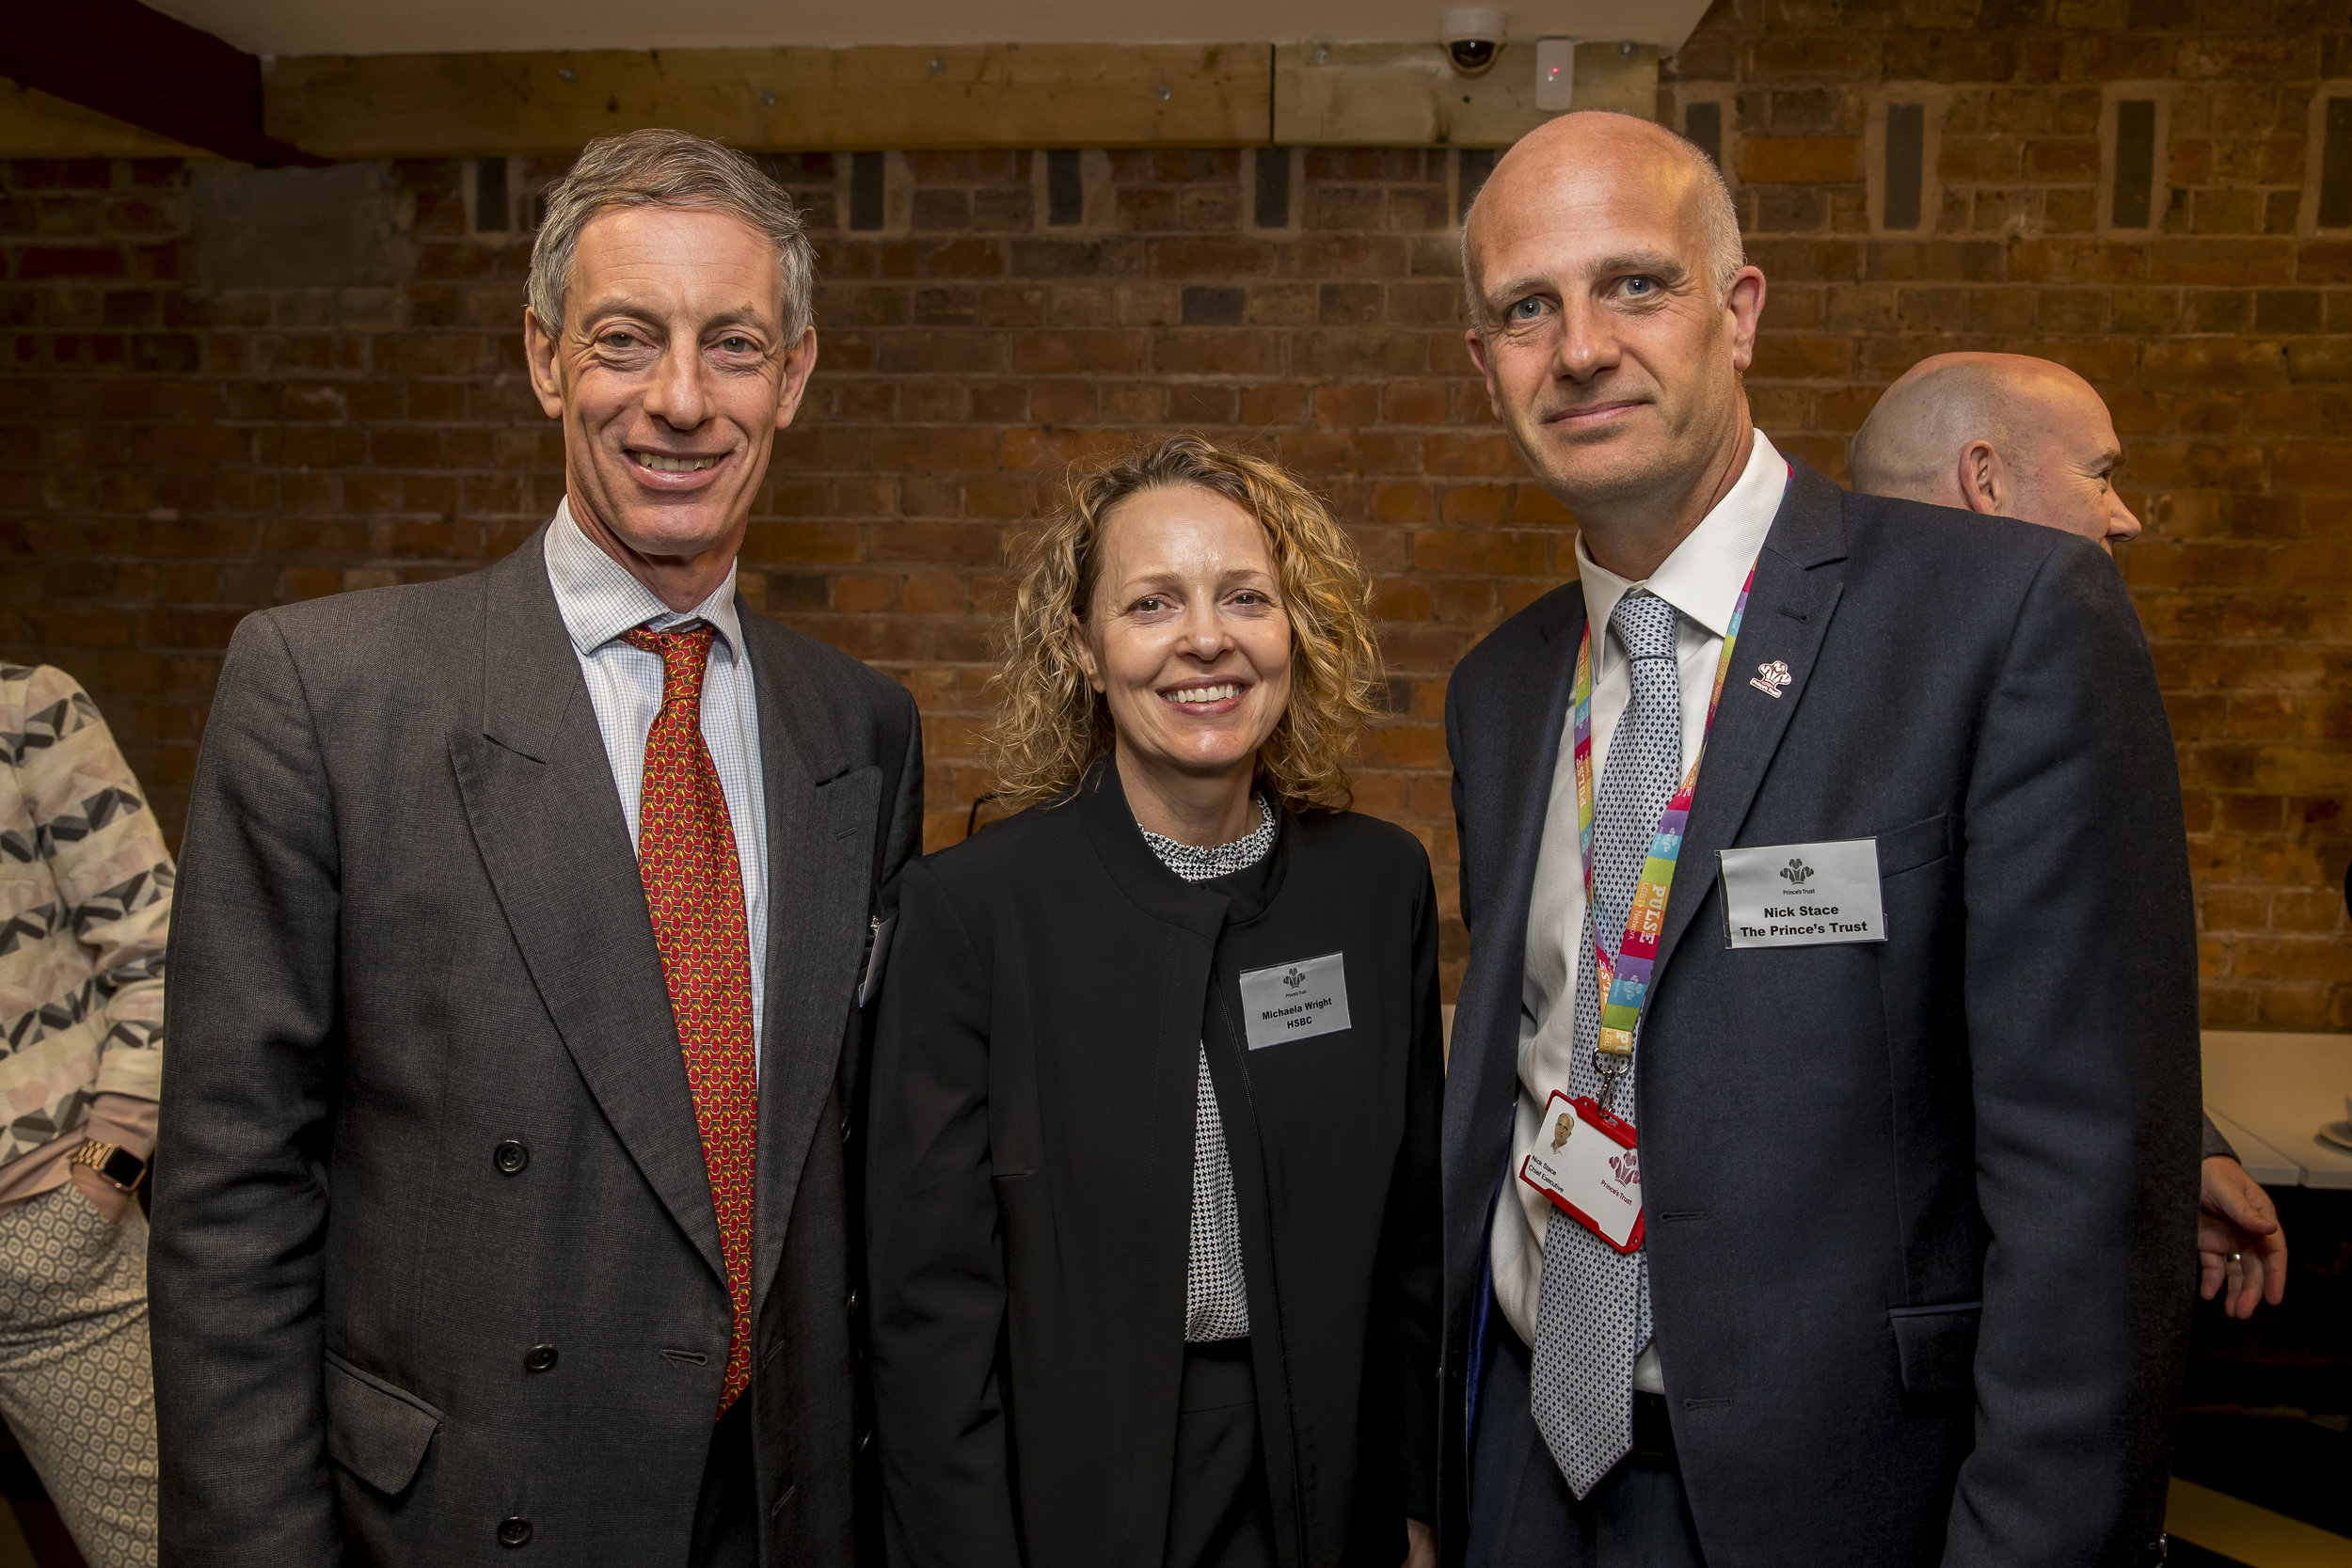 Pictured (l-r) Brendan Cook, Head of Transformation at HSBC UK, Michaela Wright Head of Corporate Sustainability, HSBC UK and Nick Stace, UK Chief Executive of The Prince's Trust.